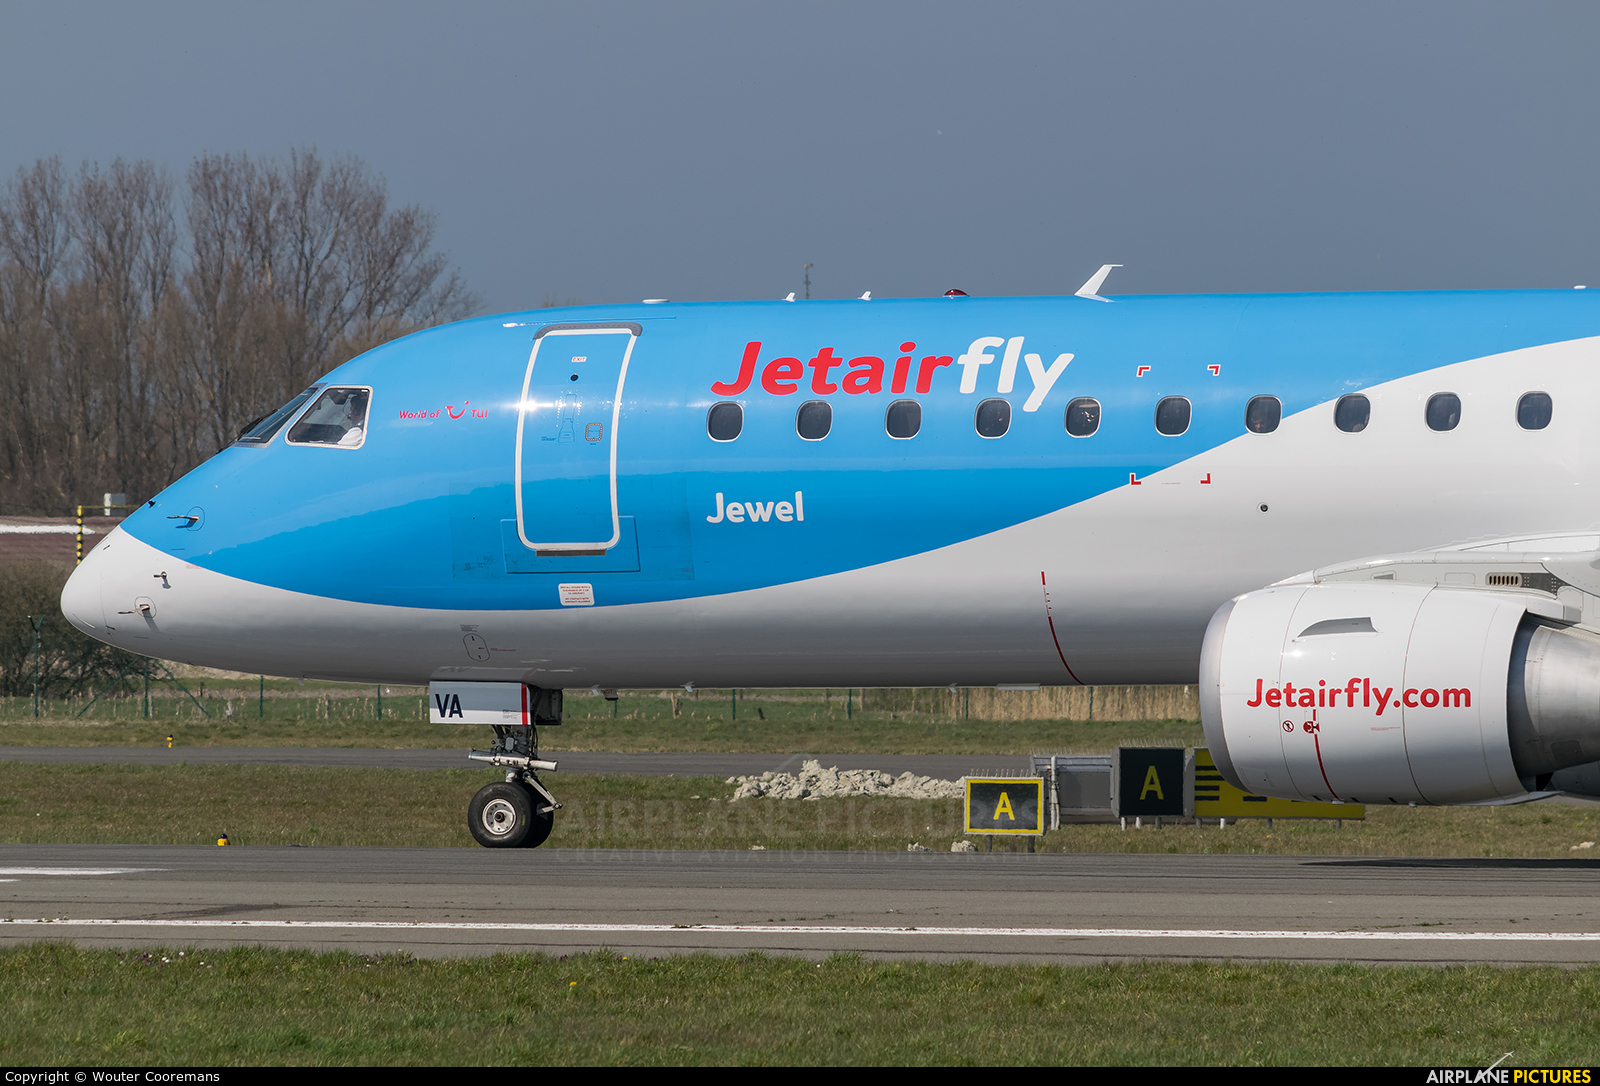 Jetairfly (TUI Airlines Belgium) OO-JVA aircraft at Ostend / Bruges